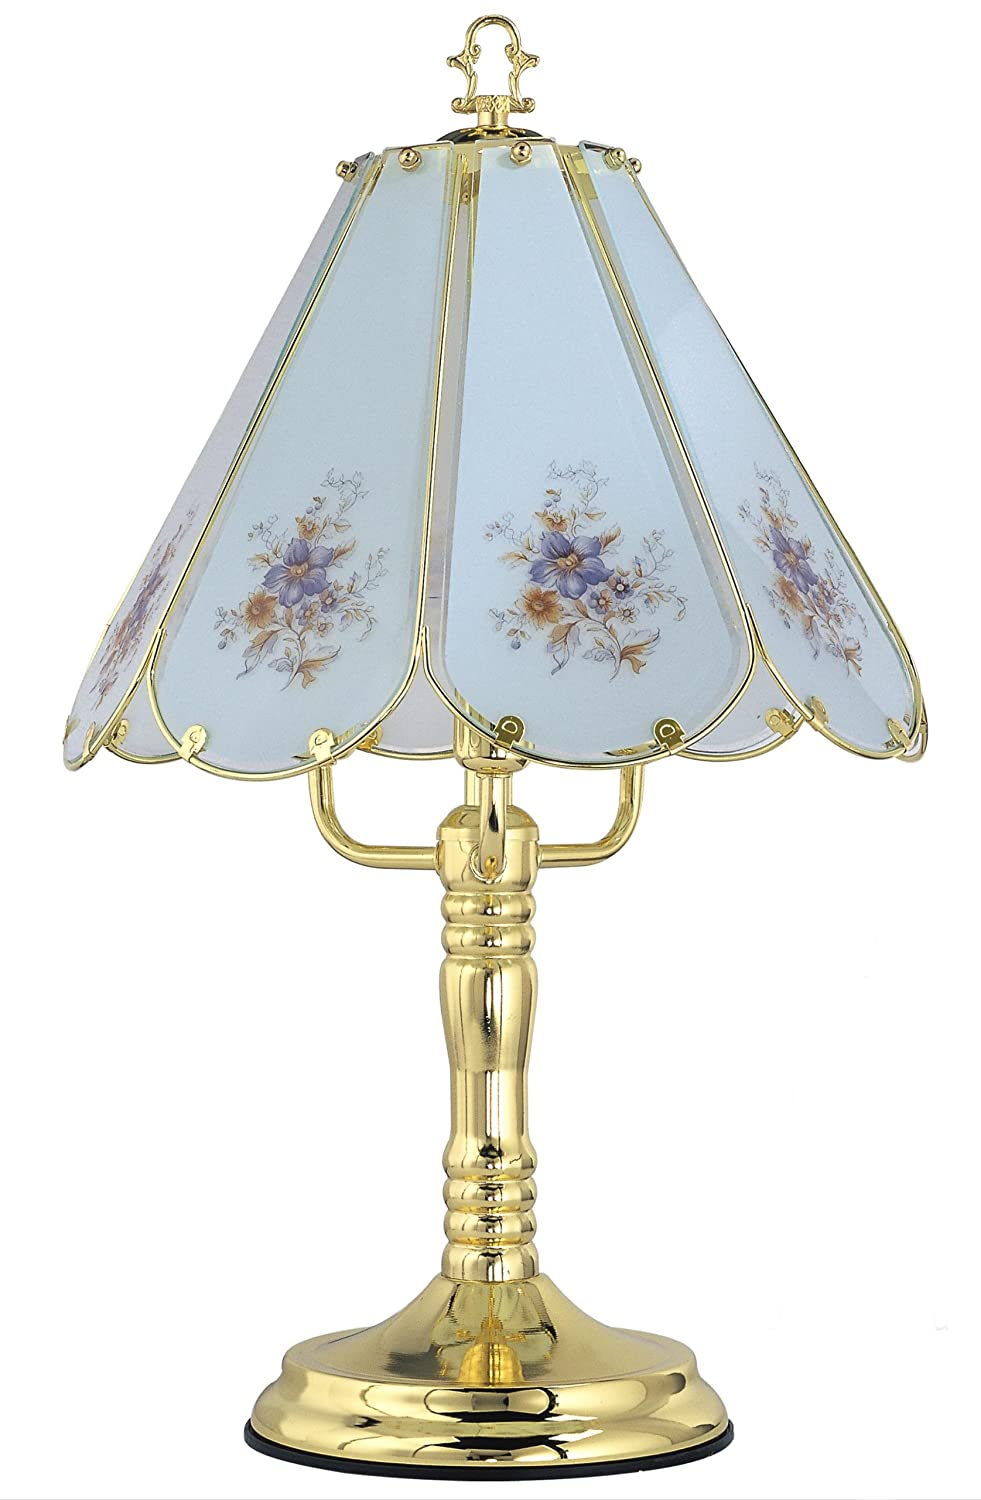 floral brass madison com amazon pmt park touch shade dp decorated glass with polished lamp lighting captured x finish table